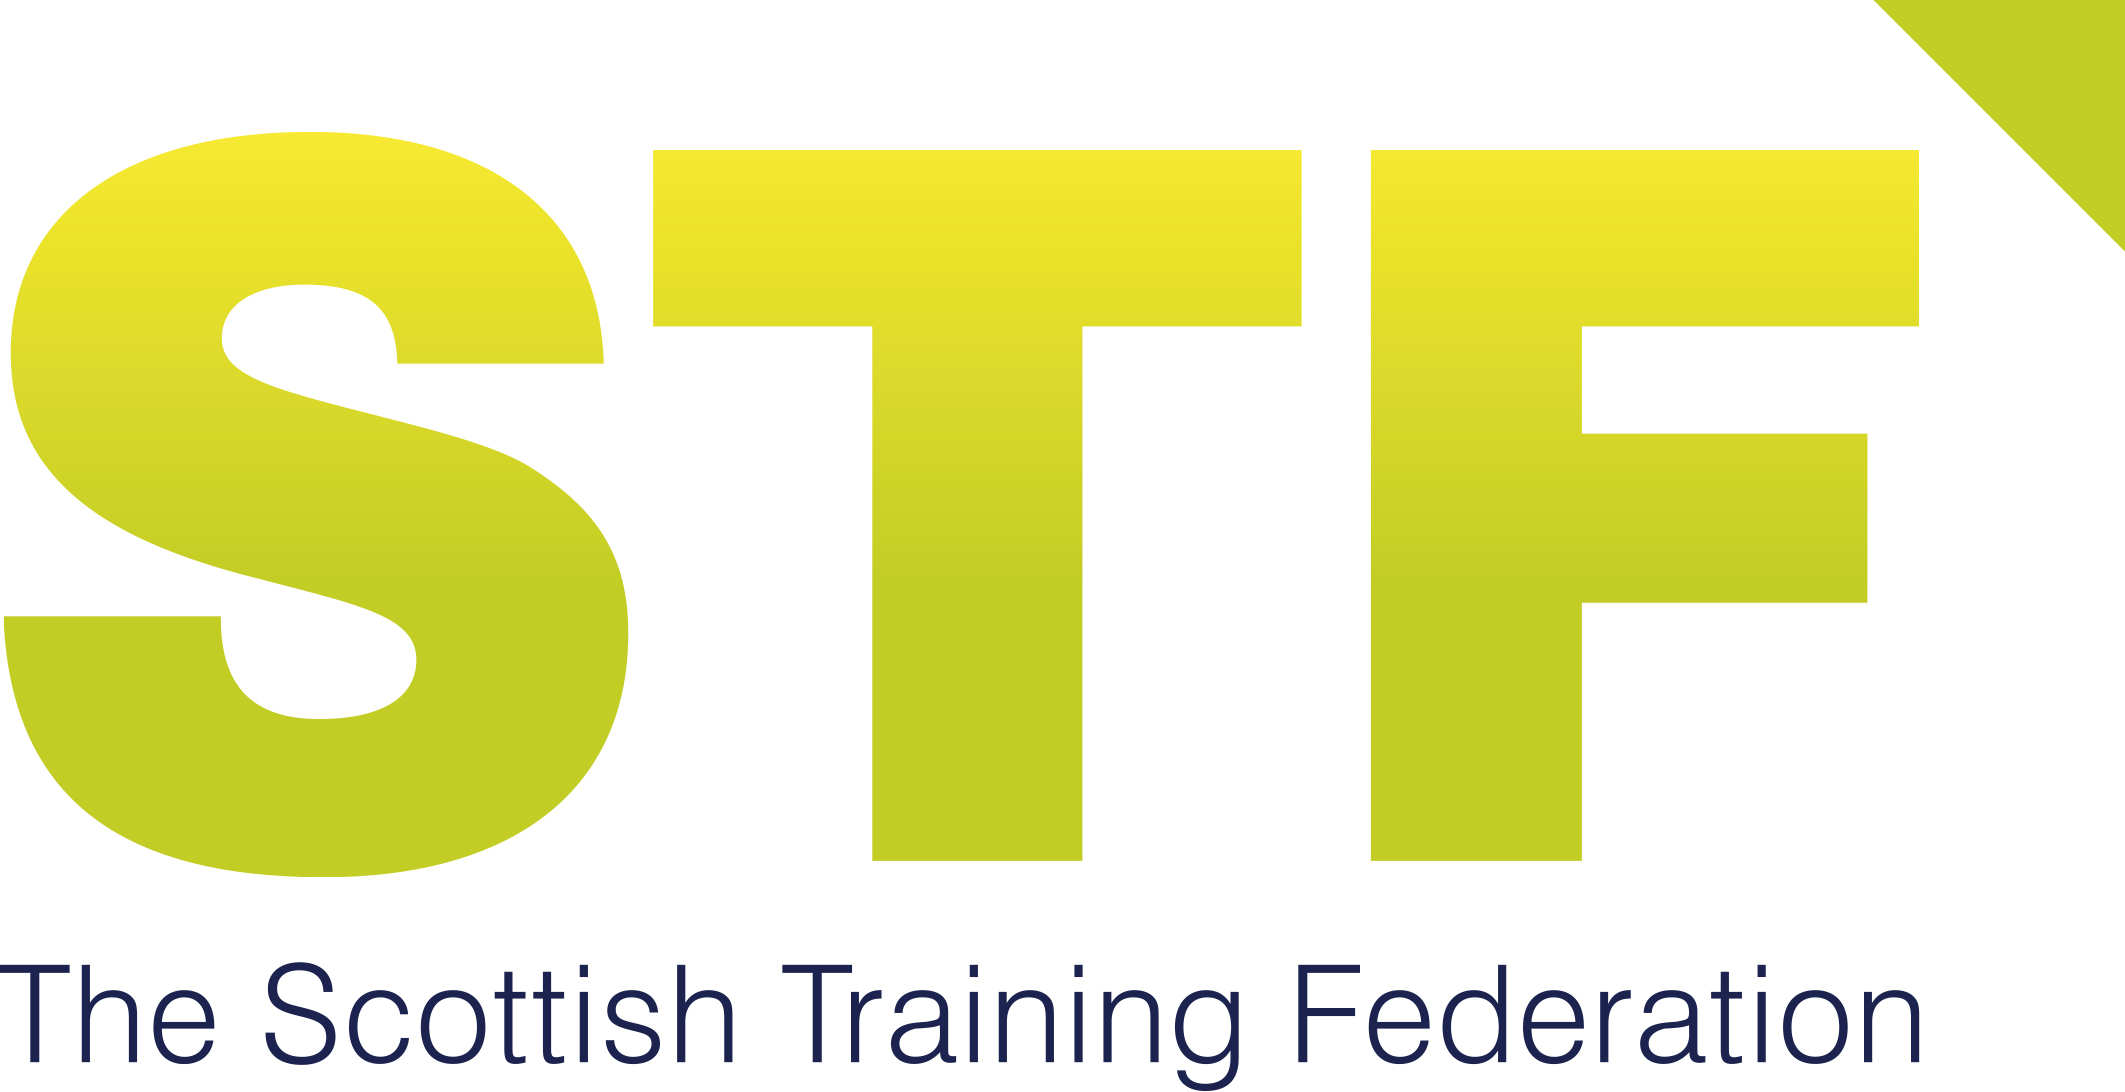 The Scottish Training Federation